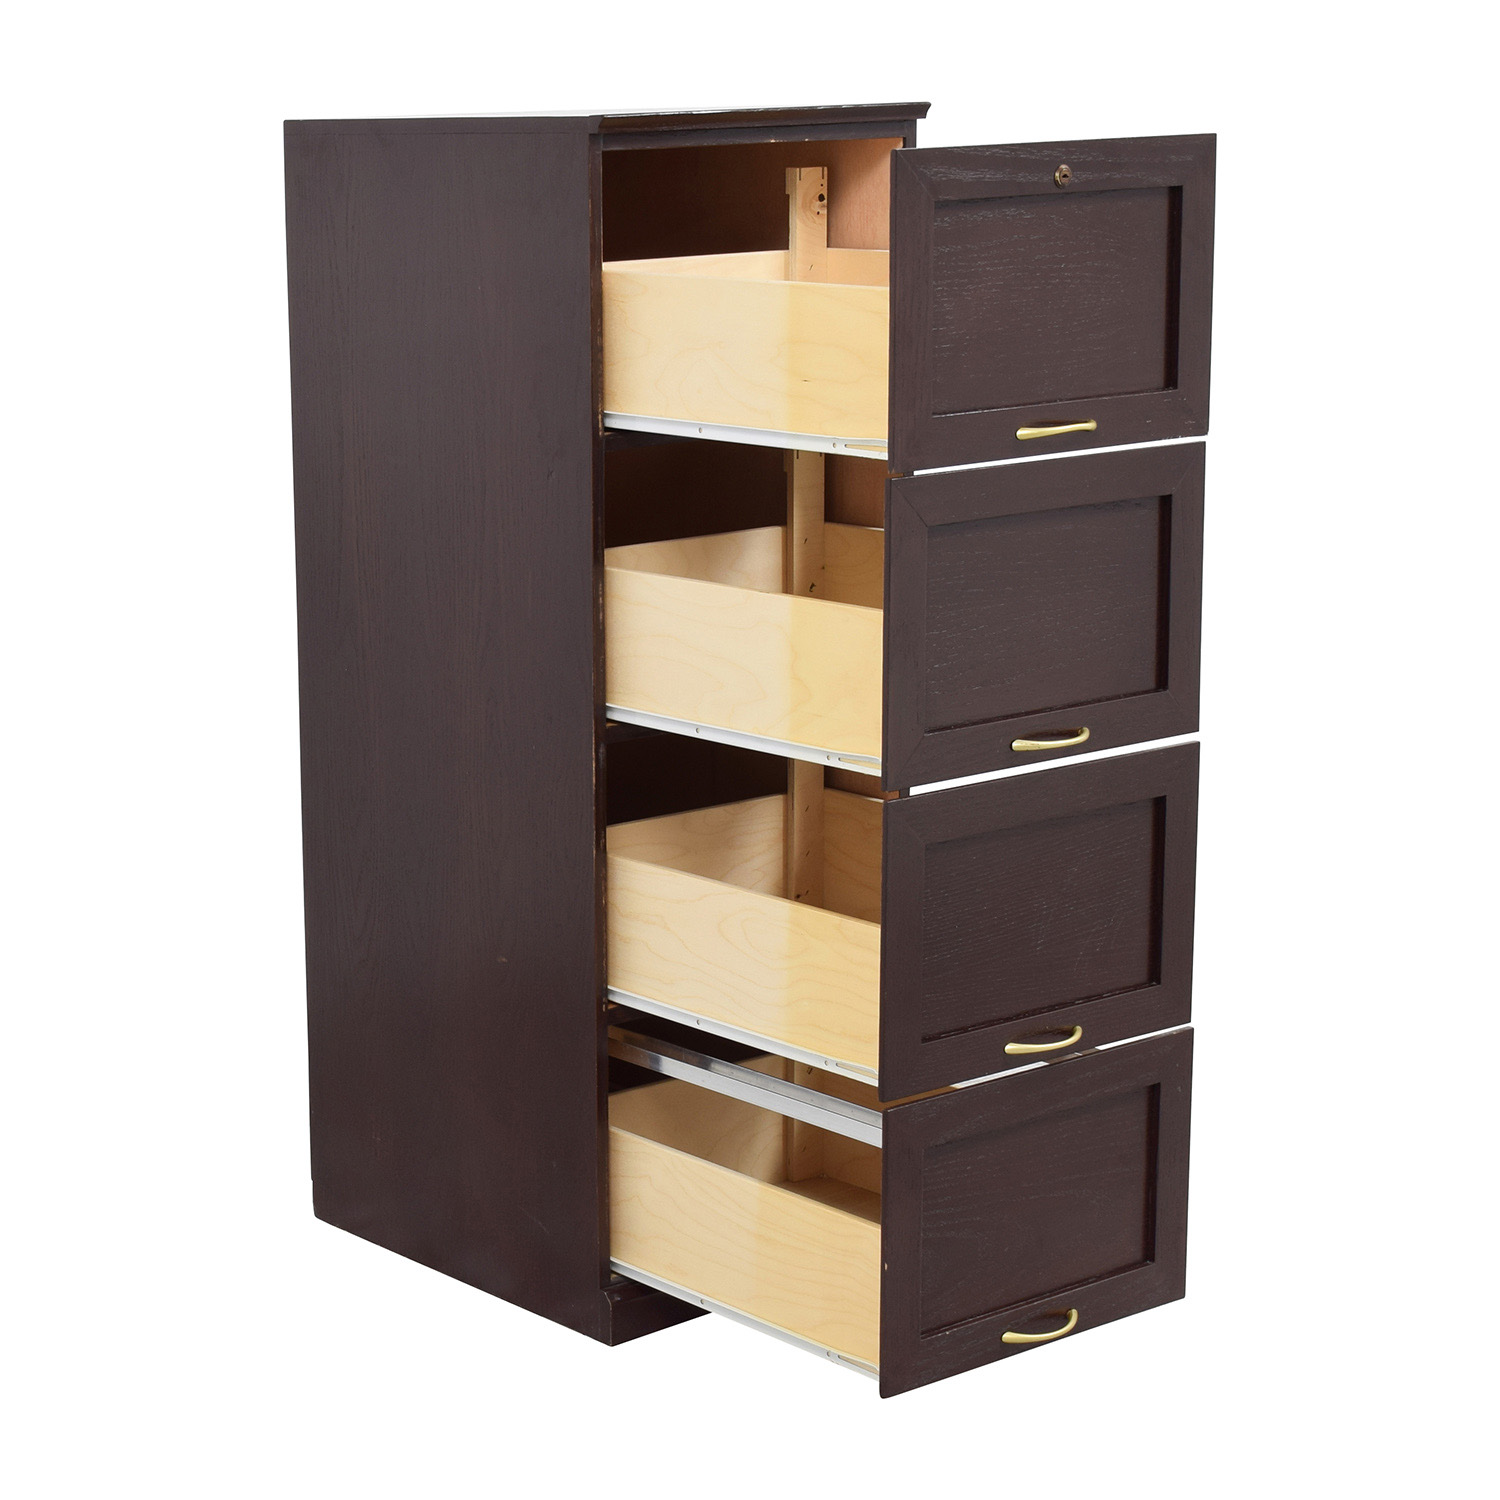 54% OFF - Tall Brown Wood File Cabinet / Storage